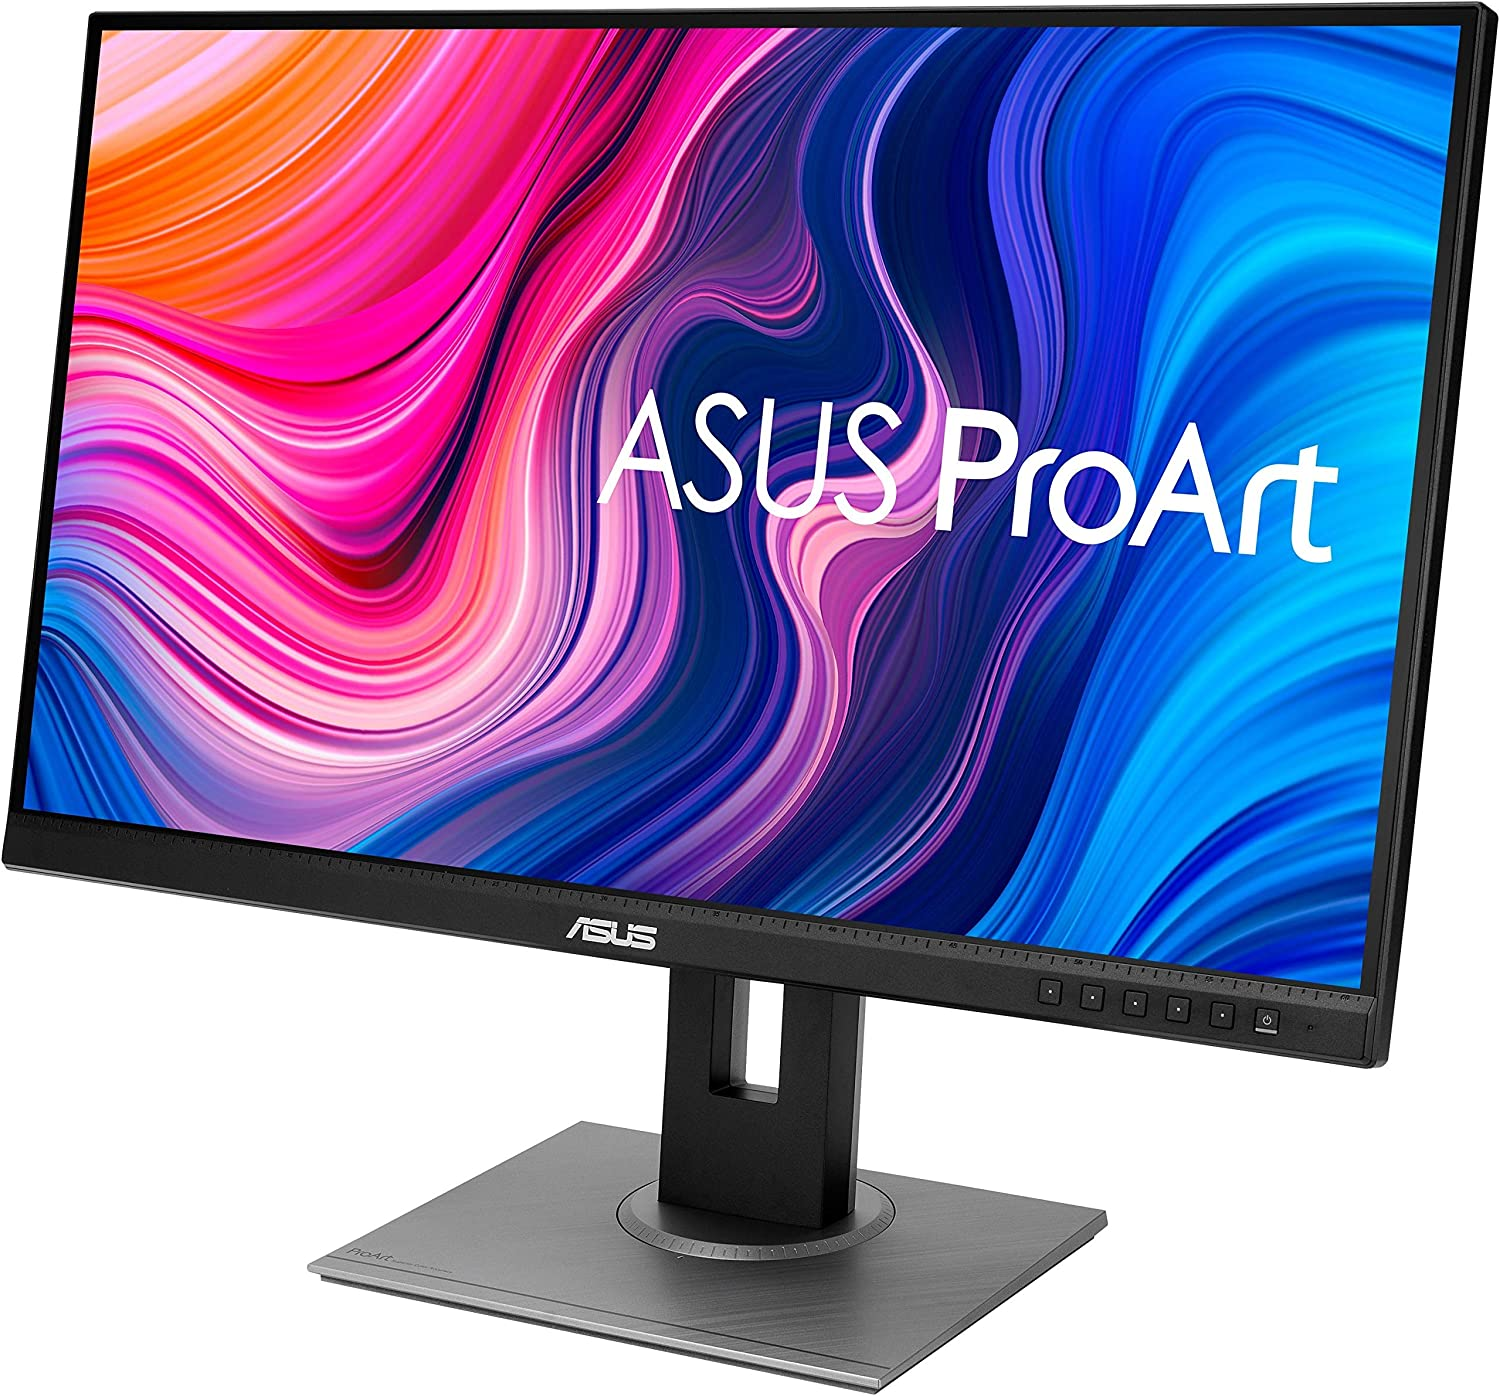 "ASUS ProArt Display PA278QV 27"" WQHD Monitor"